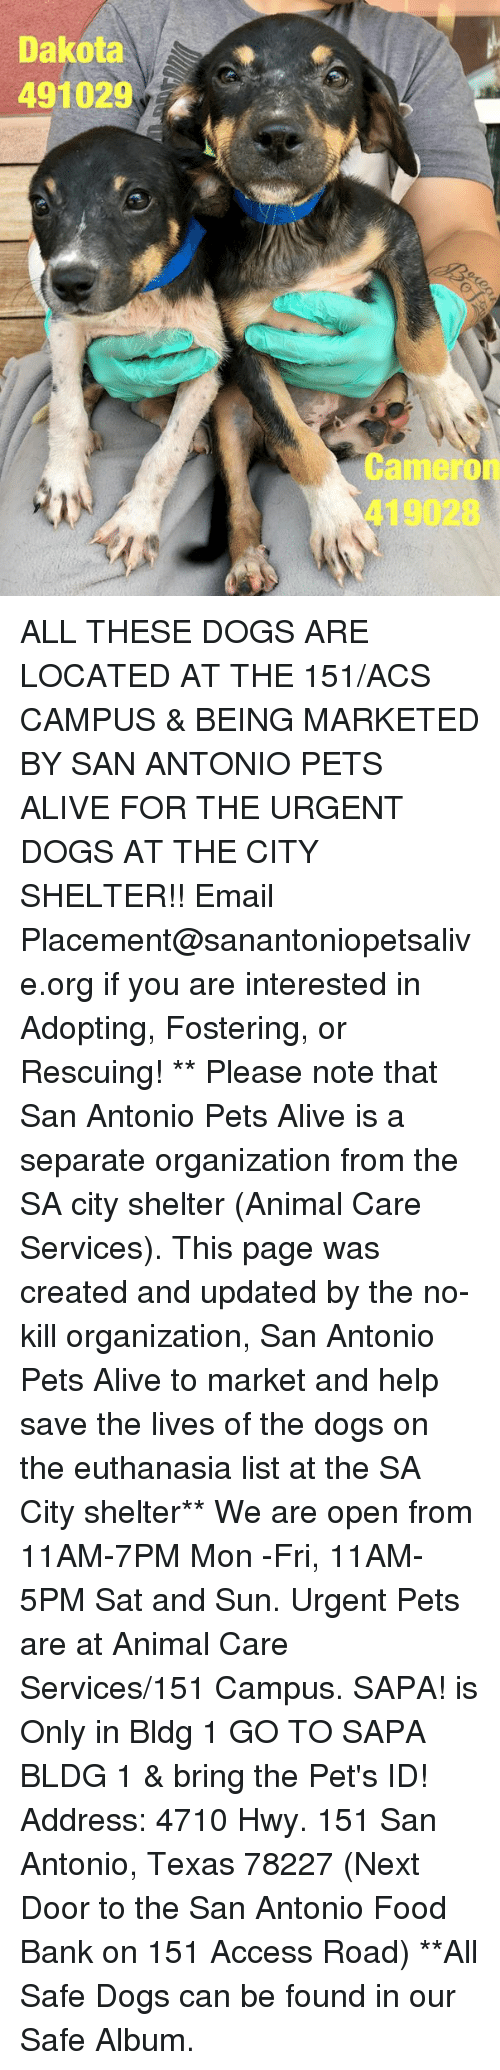 Alive, Dogs, and Food: Dakota  491029  Cameron  419028 ALL THESE DOGS ARE LOCATED AT THE 151/ACS CAMPUS & BEING MARKETED BY SAN ANTONIO PETS ALIVE FOR THE URGENT DOGS AT THE CITY SHELTER!!  Email Placement@sanantoniopetsalive.org if you are interested in Adopting, Fostering, or Rescuing!                                                                                                                                                                                                                                                                                                                                                             ** Please note that San Antonio Pets Alive is a separate organization from the SA city shelter (Animal Care Services). This page was created and updated by the no-kill organization, San Antonio Pets Alive to market and help save the lives of the dogs on the euthanasia list at the SA City shelter**  We are open from 11AM-7PM Mon -Fri, 11AM-5PM Sat and Sun. Urgent Pets are at Animal Care Services/151 Campus. SAPA! is Only in Bldg 1 GO TO SAPA BLDG 1 & bring the Pet's ID! Address: 4710 Hwy. 151 San Antonio, Texas 78227 (Next Door to the San Antonio Food Bank on 151 Access Road) **All Safe Dogs can be found in our Safe Album.